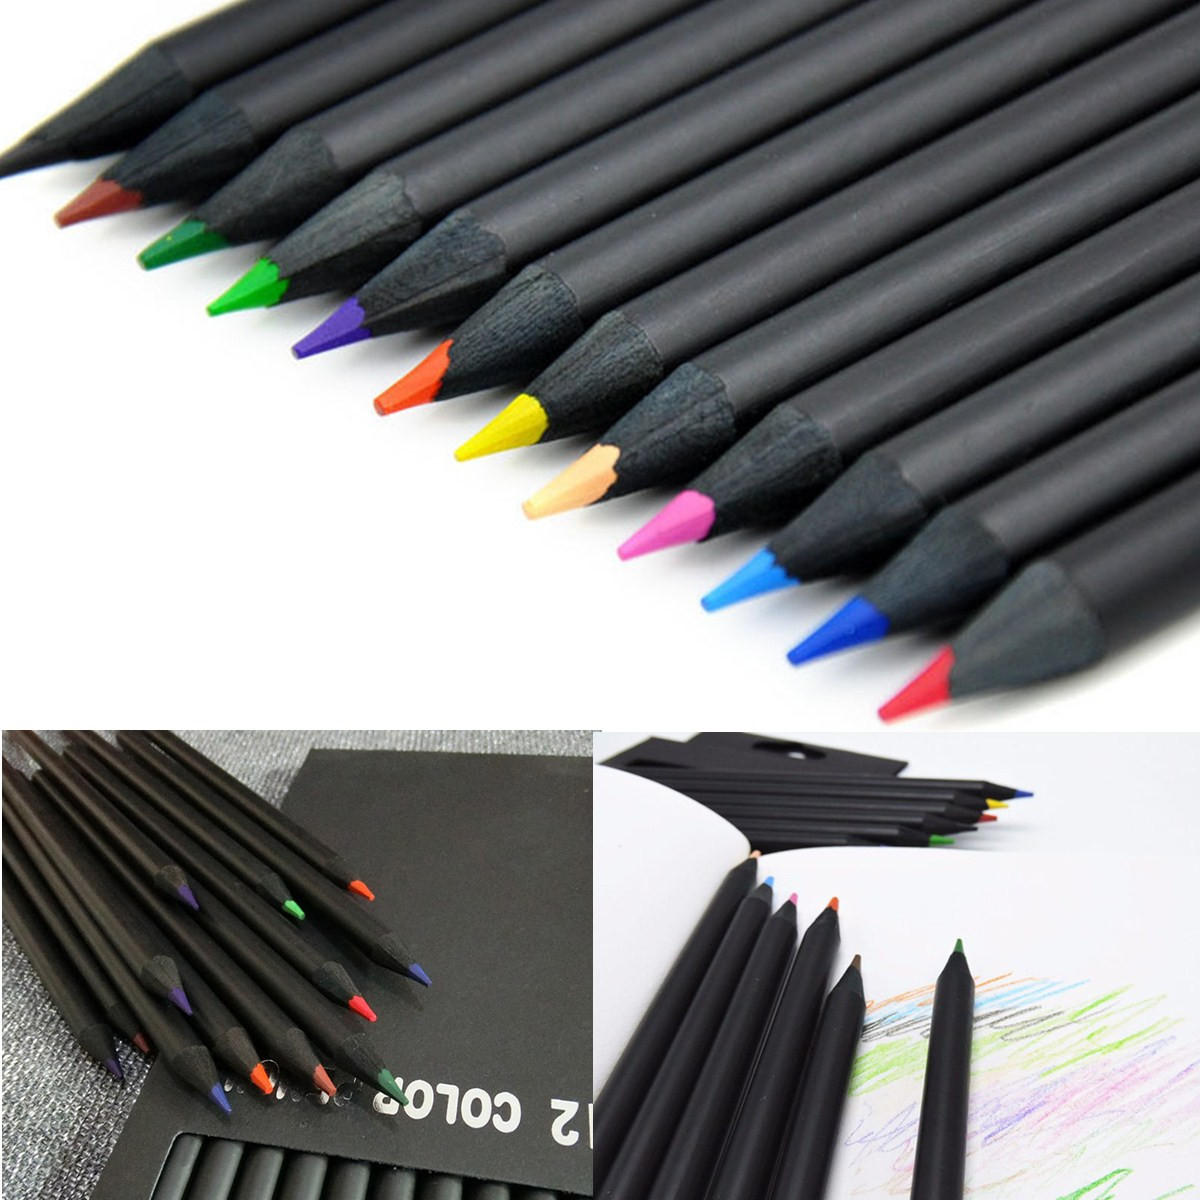 12 colors wooden drawing charcoal pencils black soft painting sketch fine art pencil